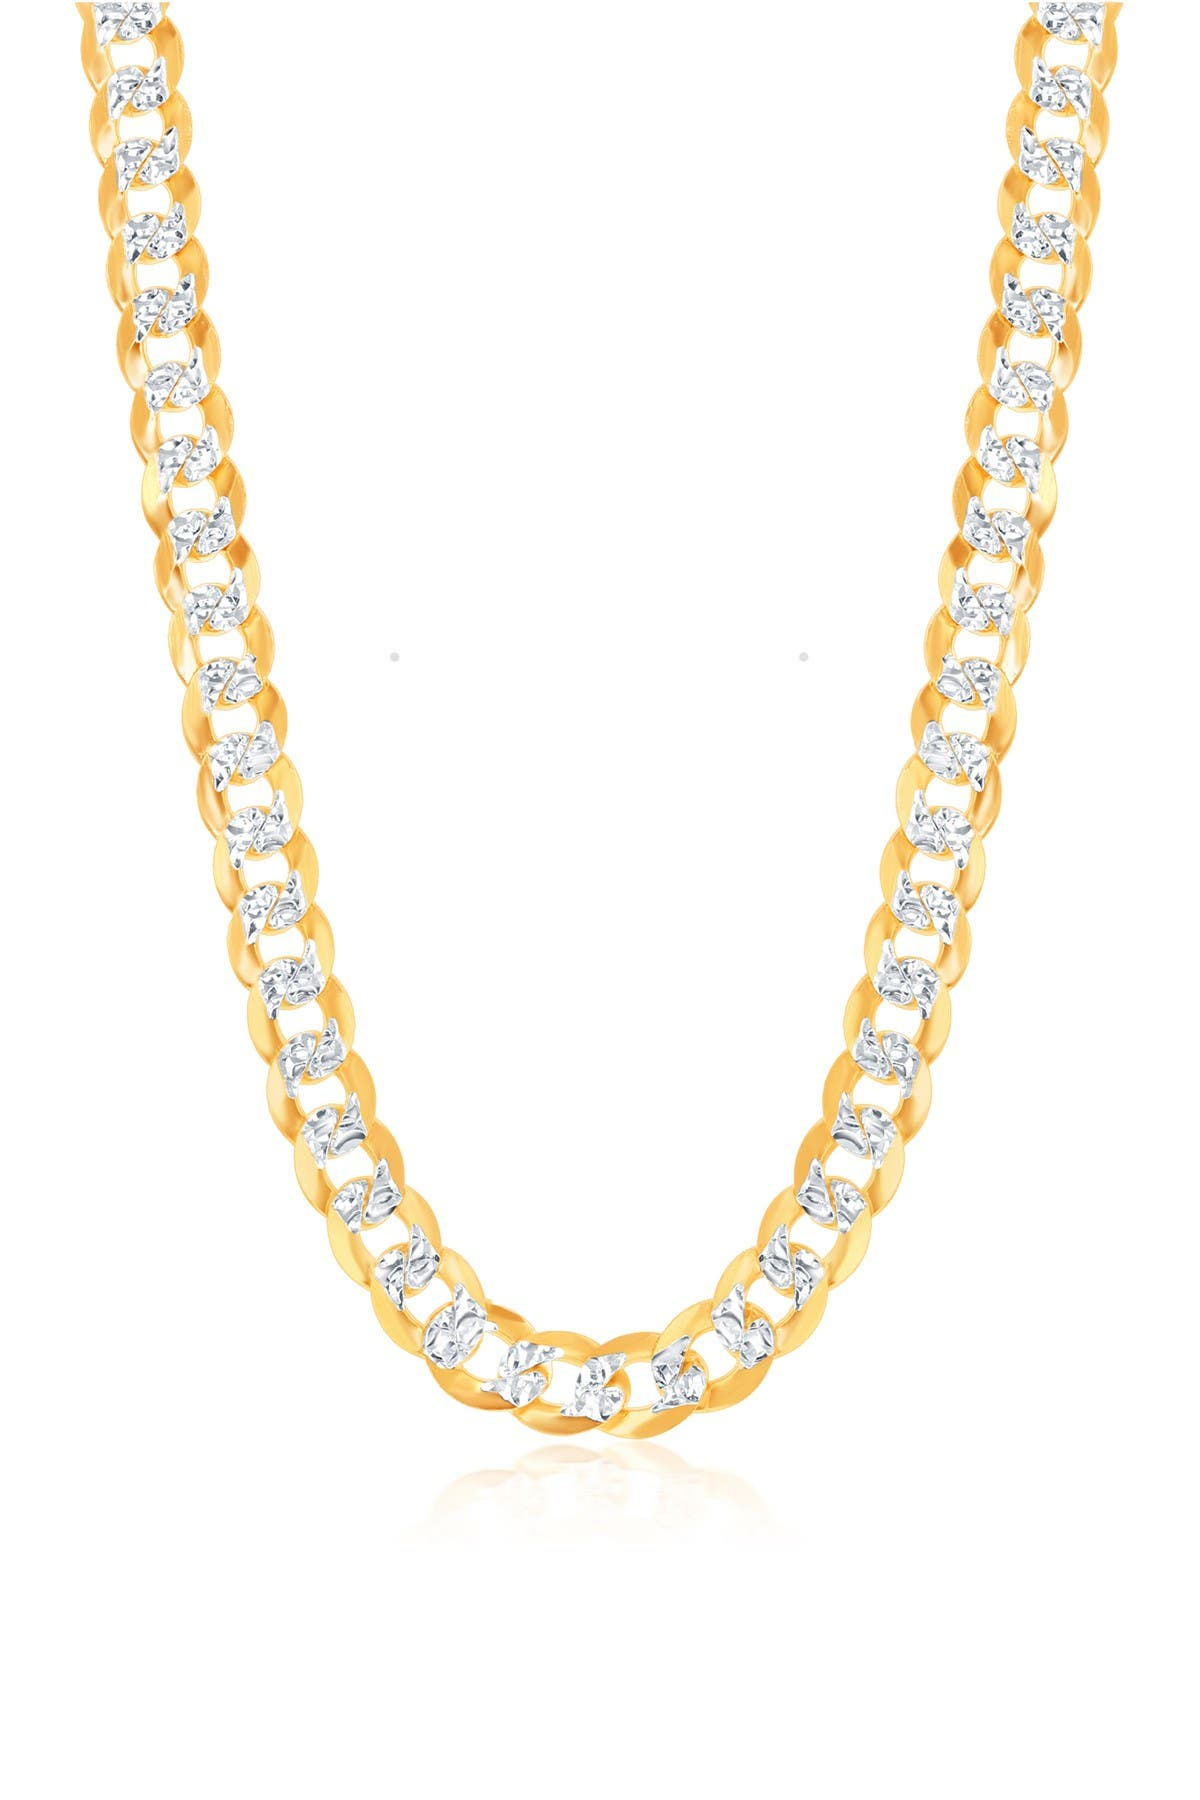 Image of Simona Jewelry 14K Yellow Gold Plated Sterling Silver 7.3mm Flat Cuban Chain Necklace